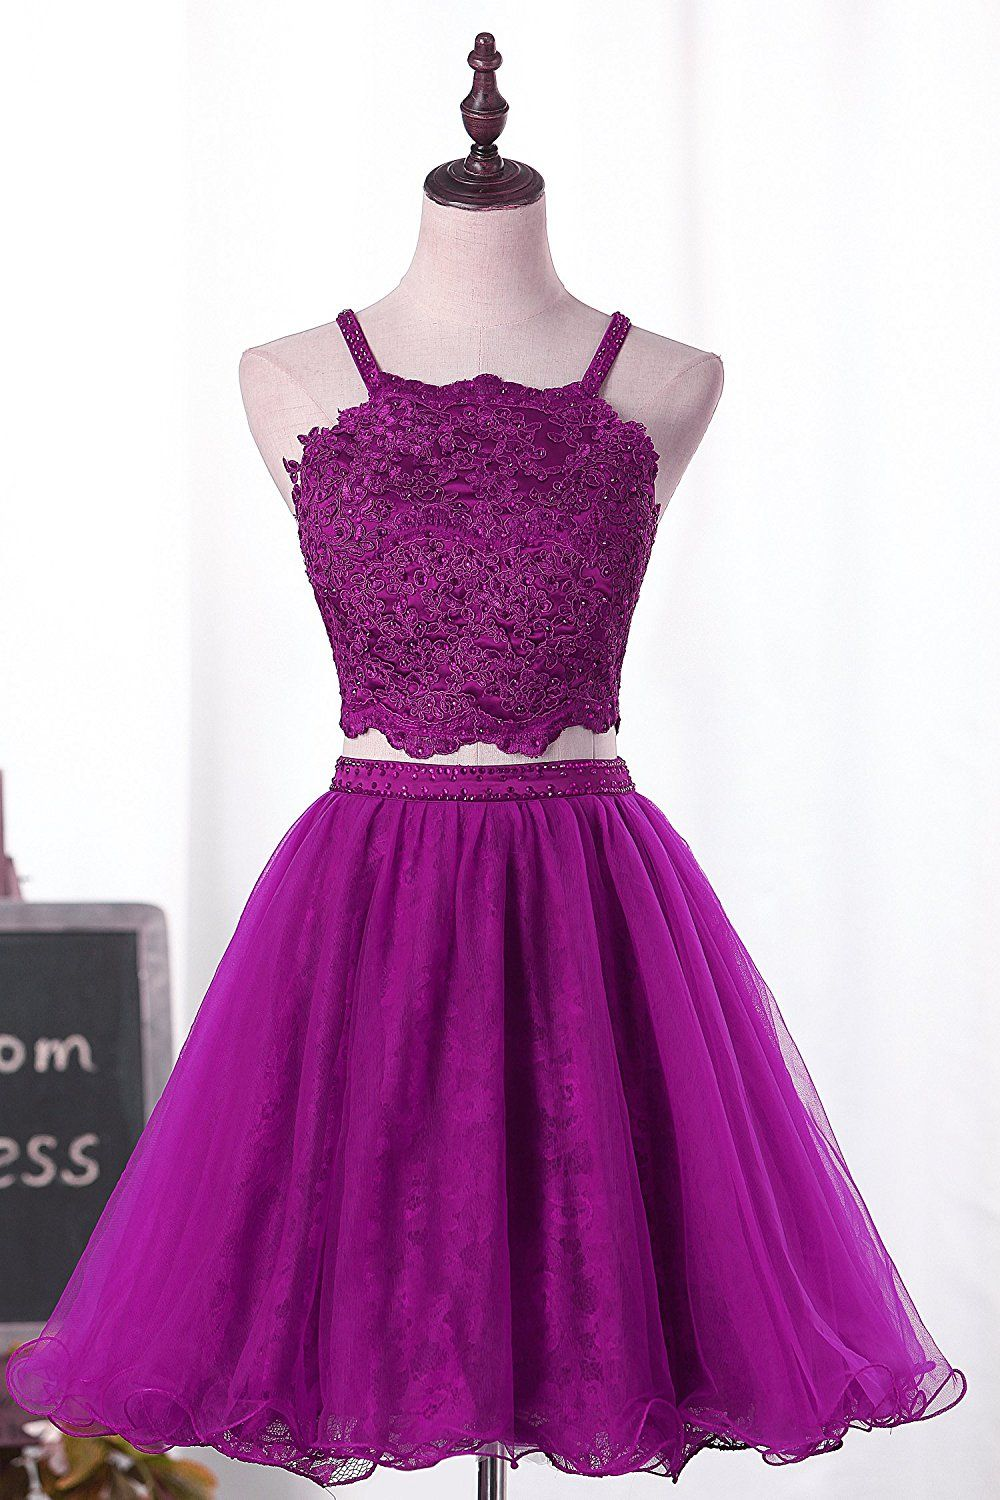 Lovingdress two pieces homecoming dresses with beaded tulle prom